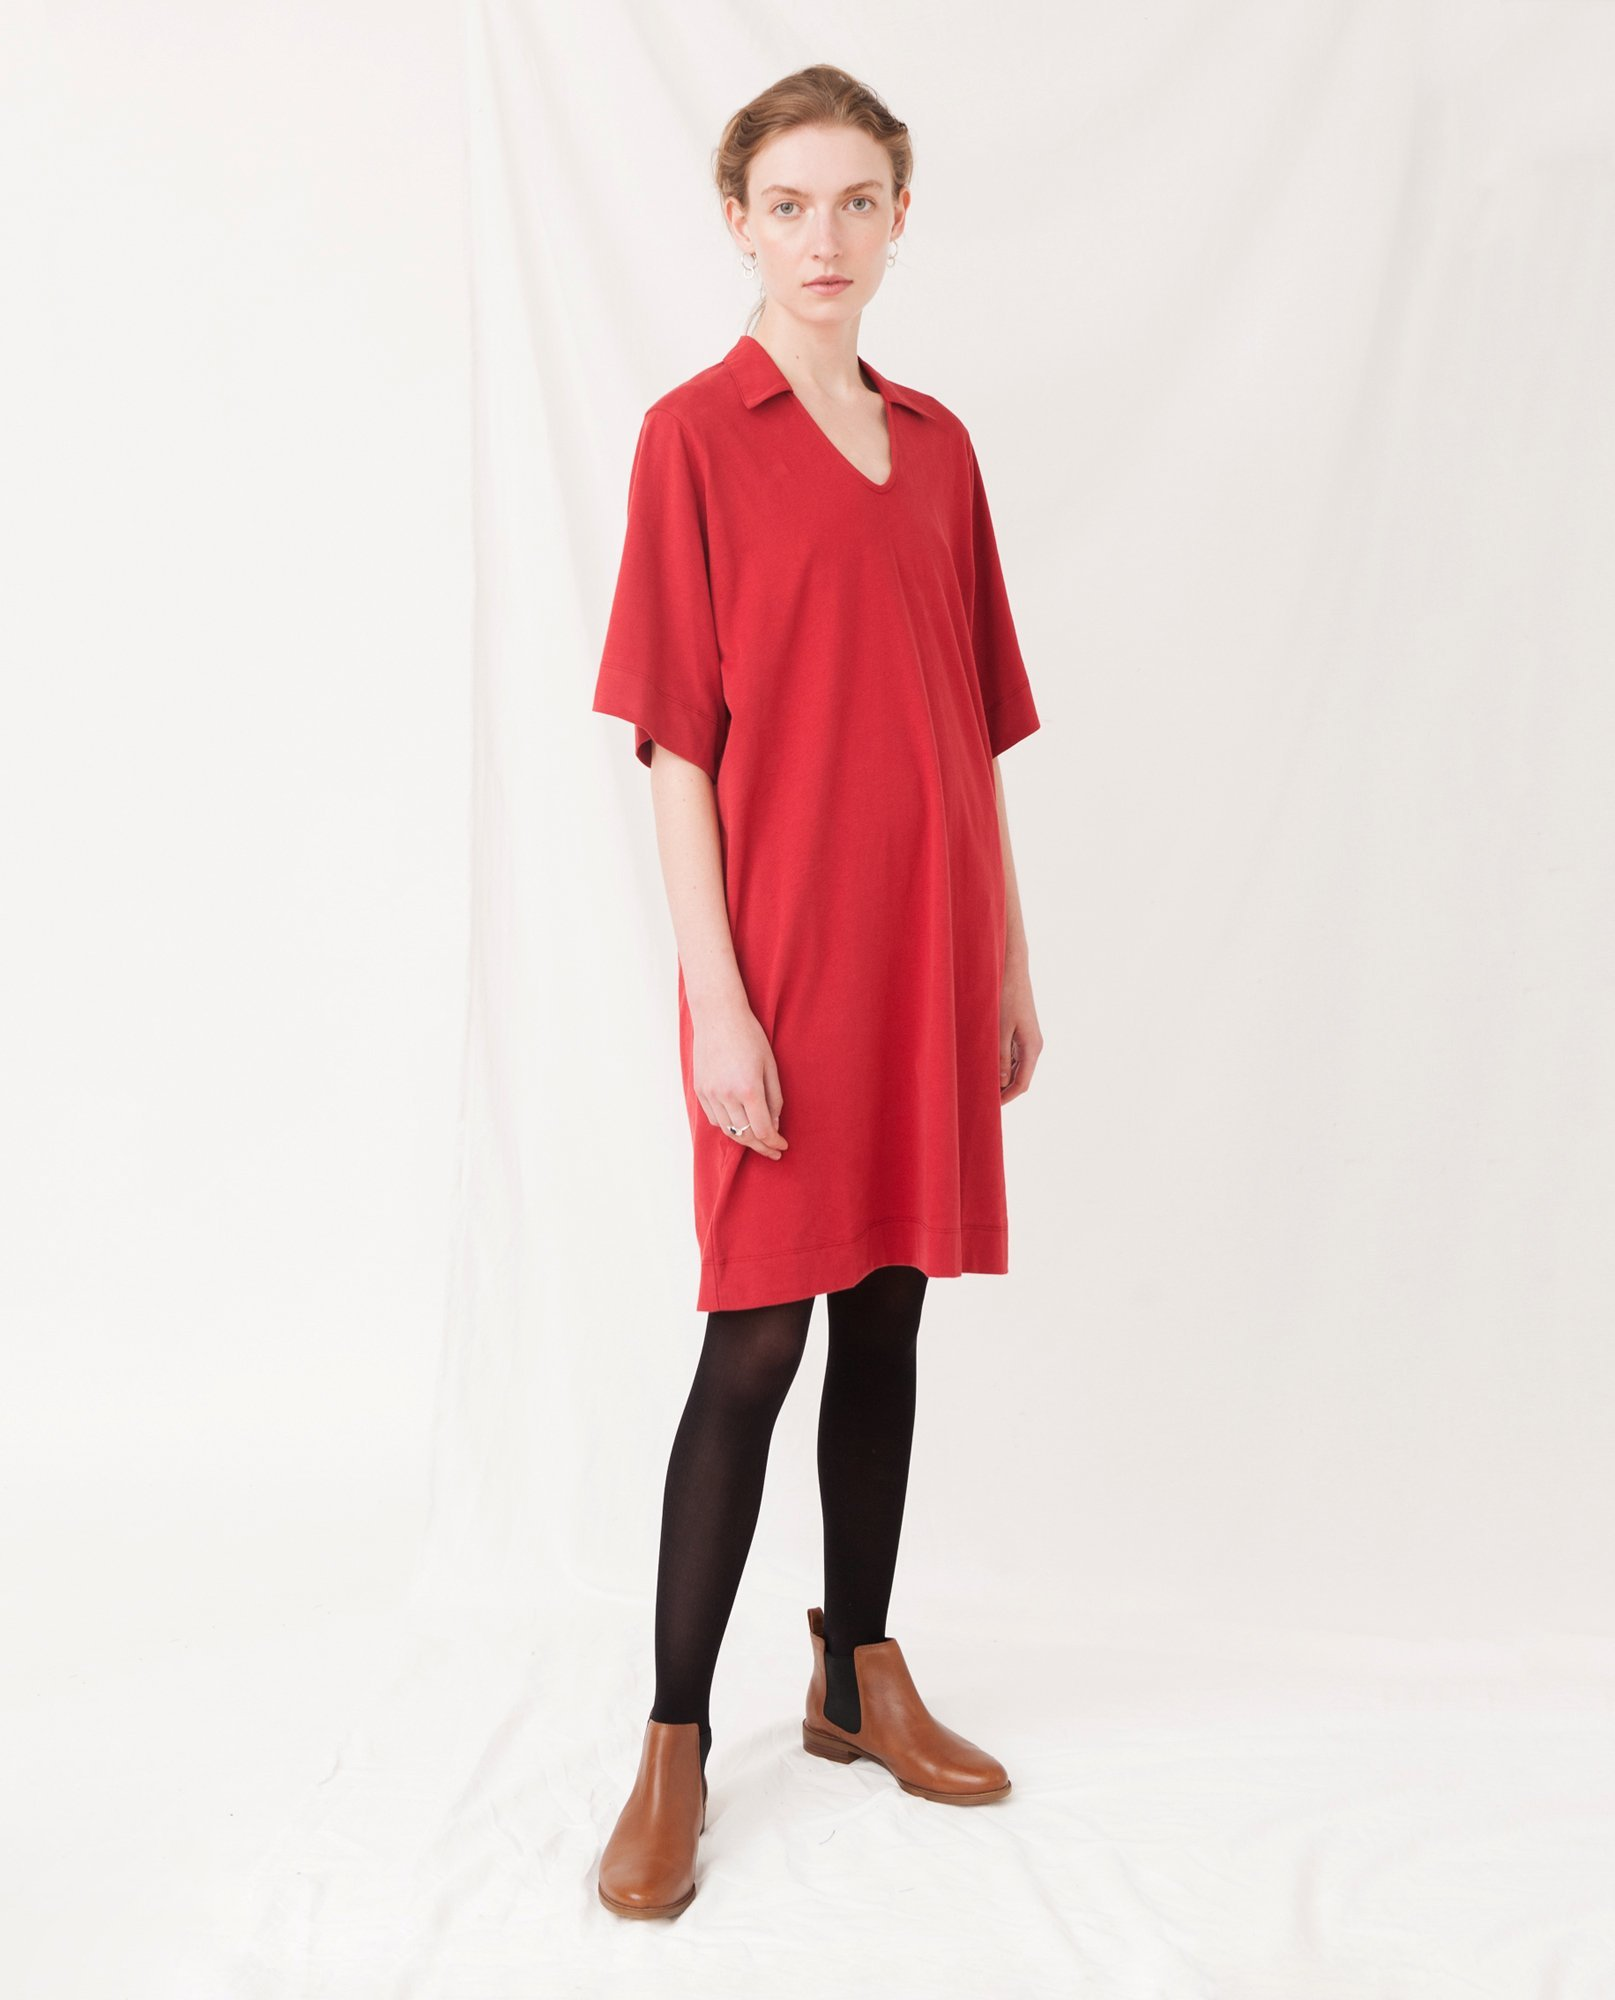 LUANA Organic Cotton Dress In Cranberry from Beaumont Organic